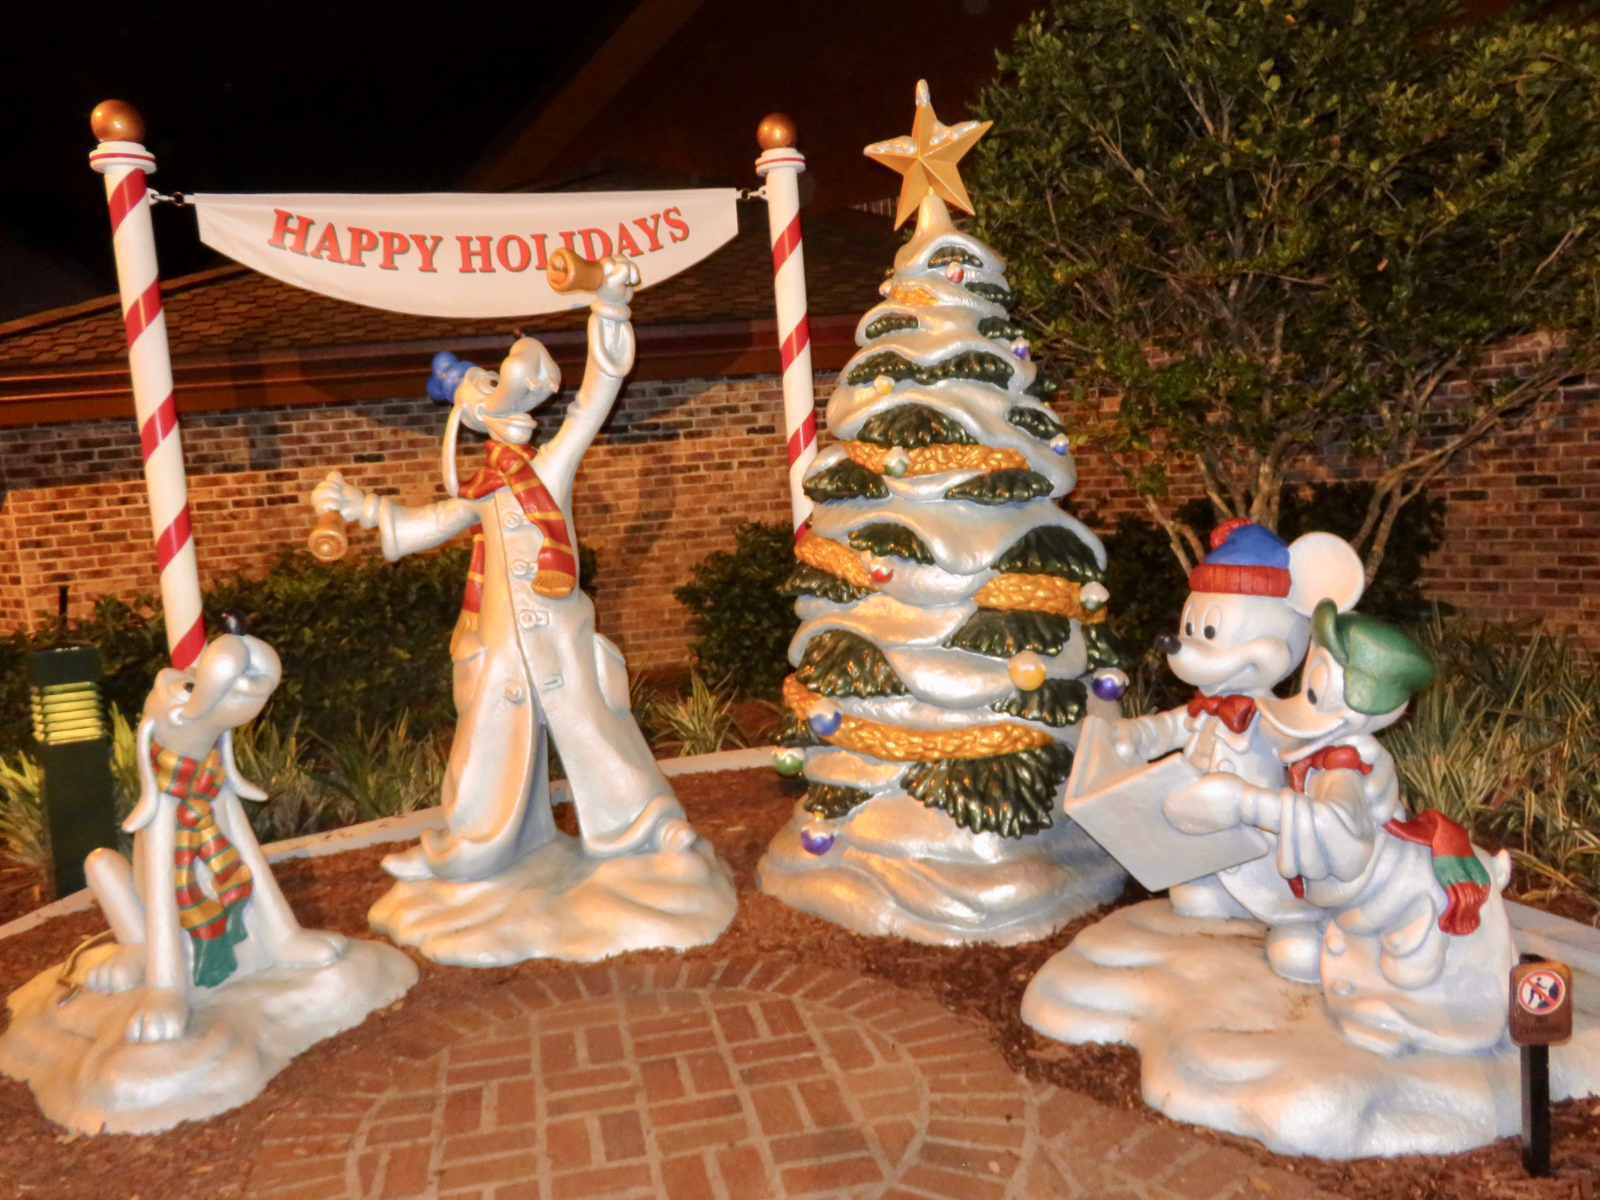 the happy holidays sculpture next to disneys days of christmas store - Disney Christmas Store